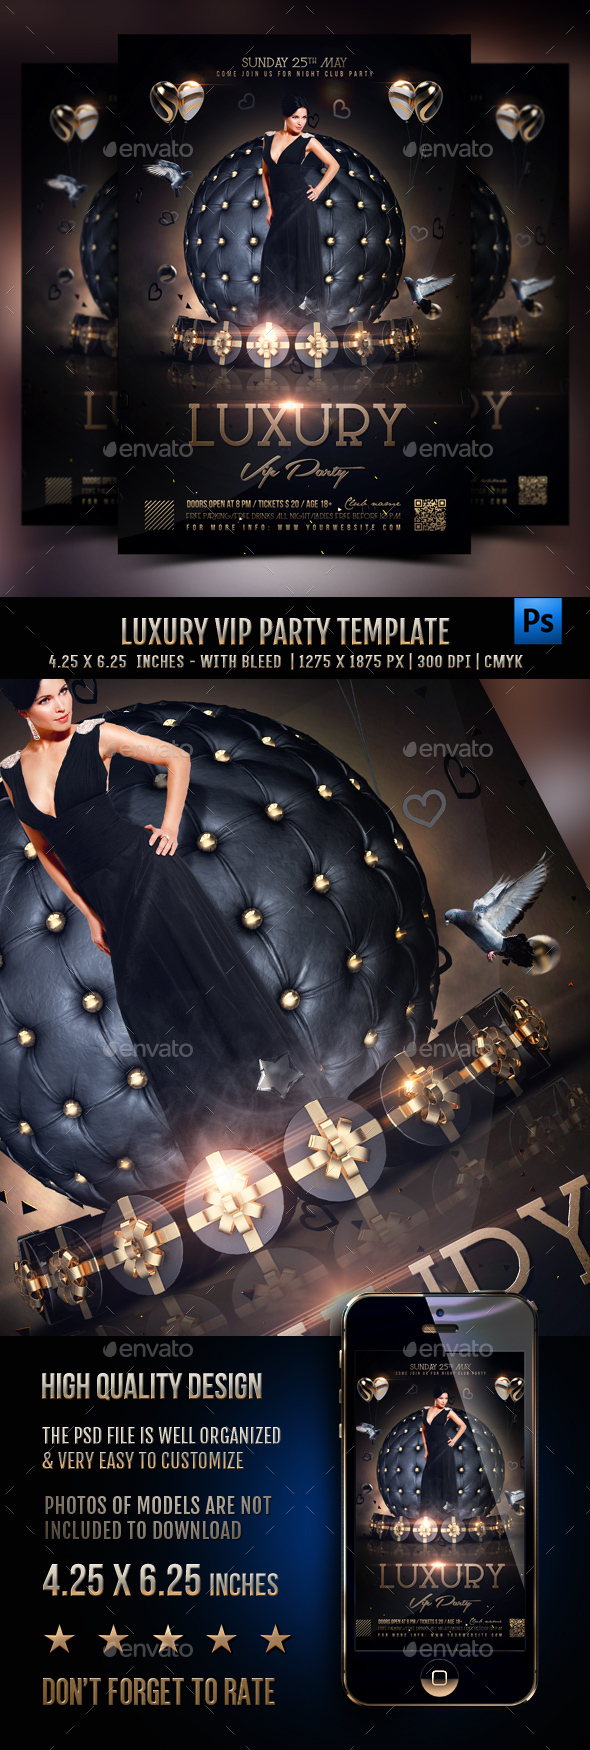 Luxury Vip Party Flyer Template - Clubs & Parties Events